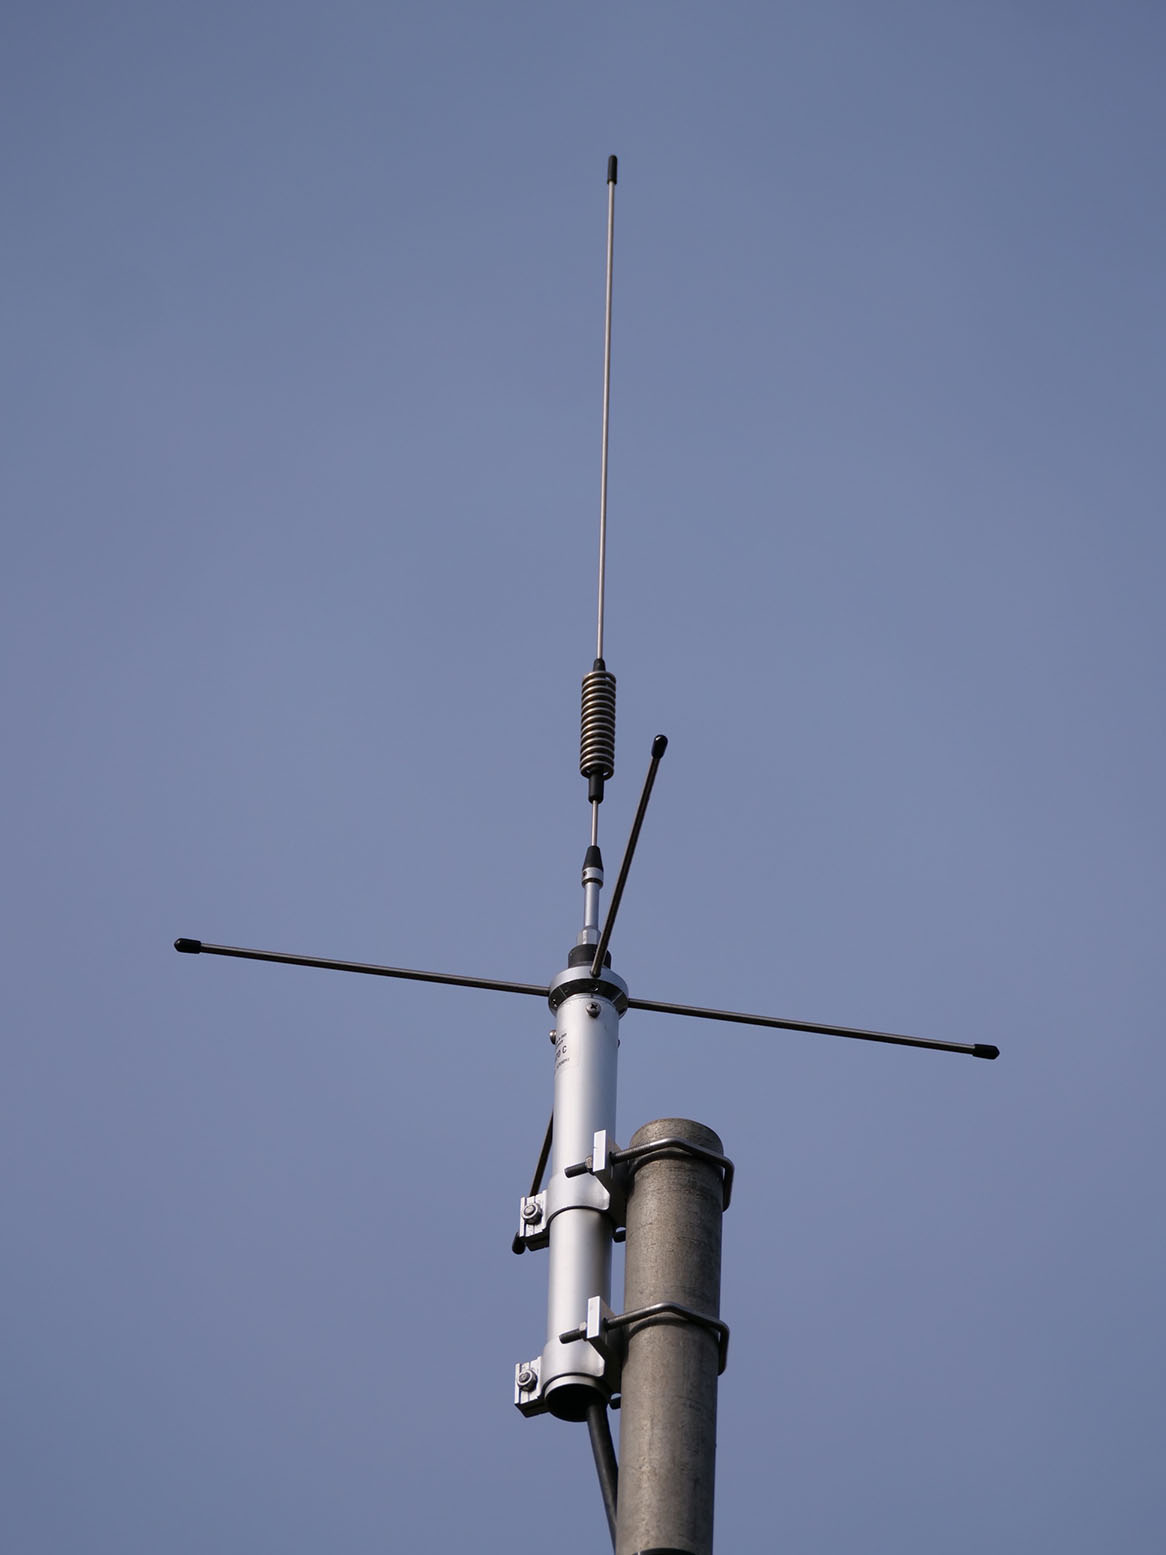 GB7CQ antenna. Sirio GP365-470C tuned for the 70cm band.